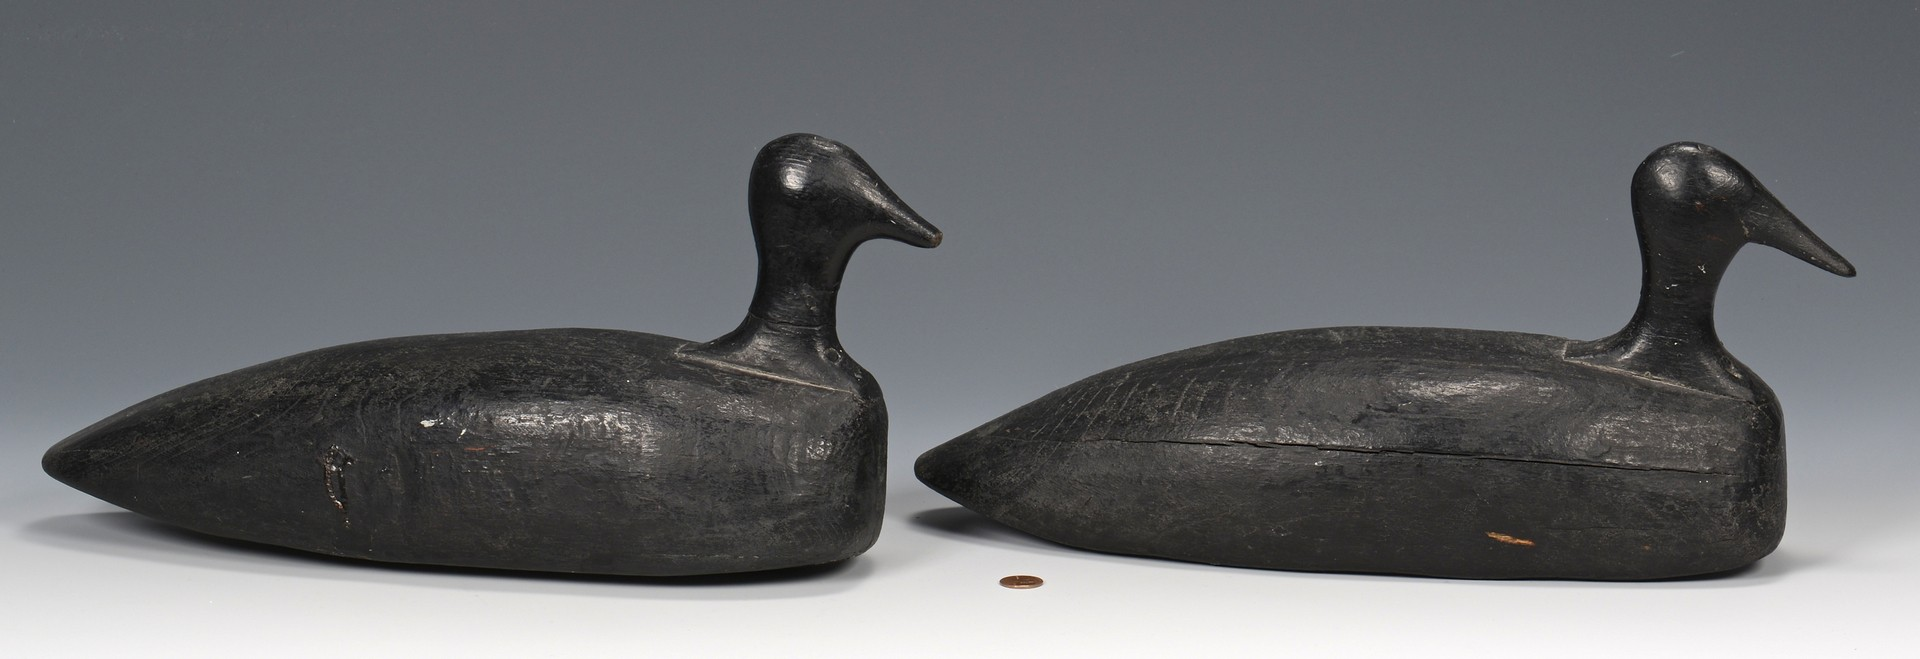 Lot 527: 2 Early Decoys & Large Basket